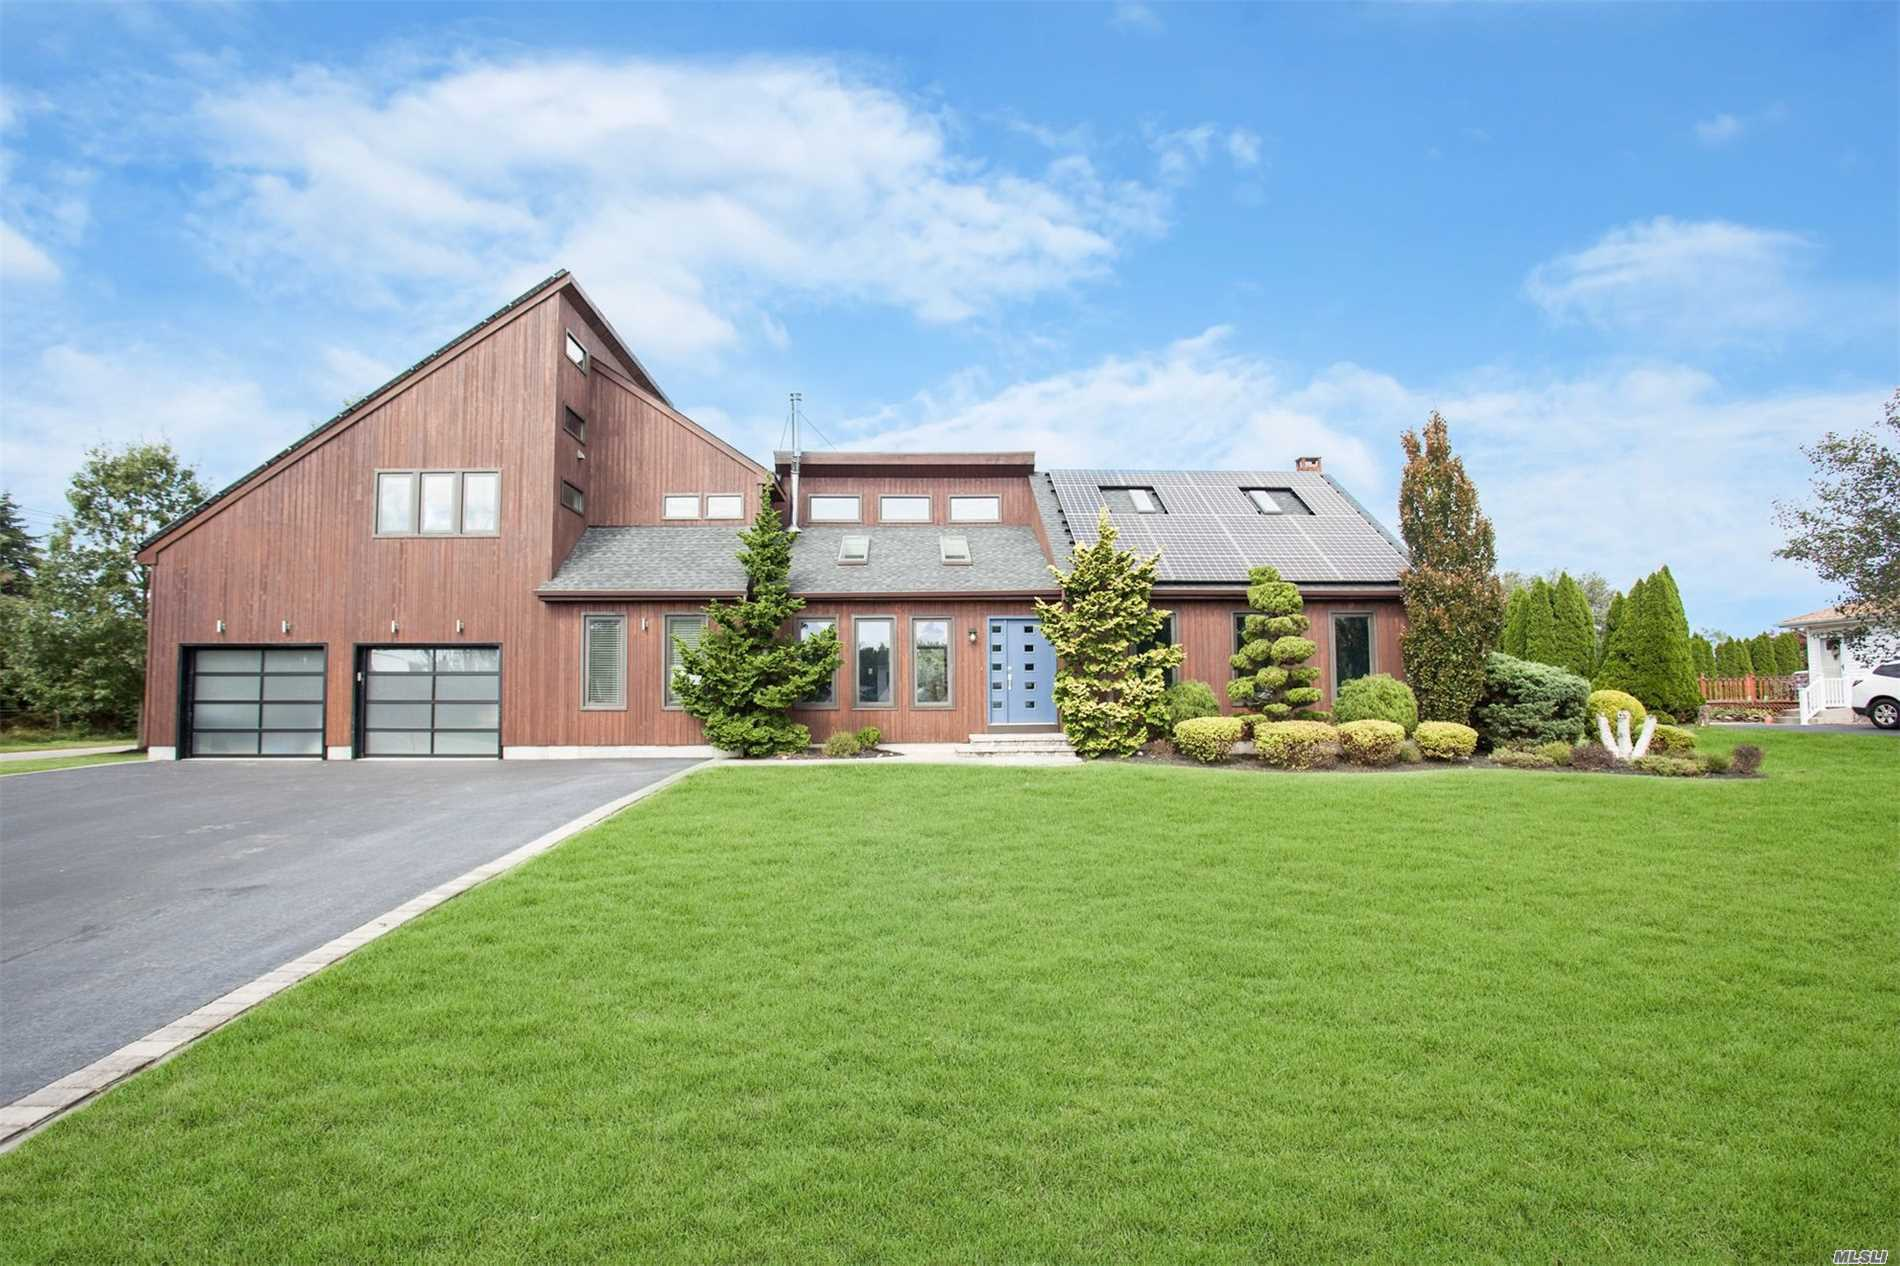 Spacious Contemporary Home With Lots Of Extras! Lr W/Wood Burning Stove; Fdr; Eik W/Granite Counters & 6 Ss Appliances; Master Br W/En-Suite, Radiant Heat, Gas Frplc And 2 Walk-In Closets; 3 Guest Brs; 2.5 Baths; Family Rm; Full Basement W/Game Rm & Sauna & Fabulous Backyard With Igp, Trex Deck, Patio W/Island That Has Bbq & Fridge. Solar Panels Keep Electric Costs Low.